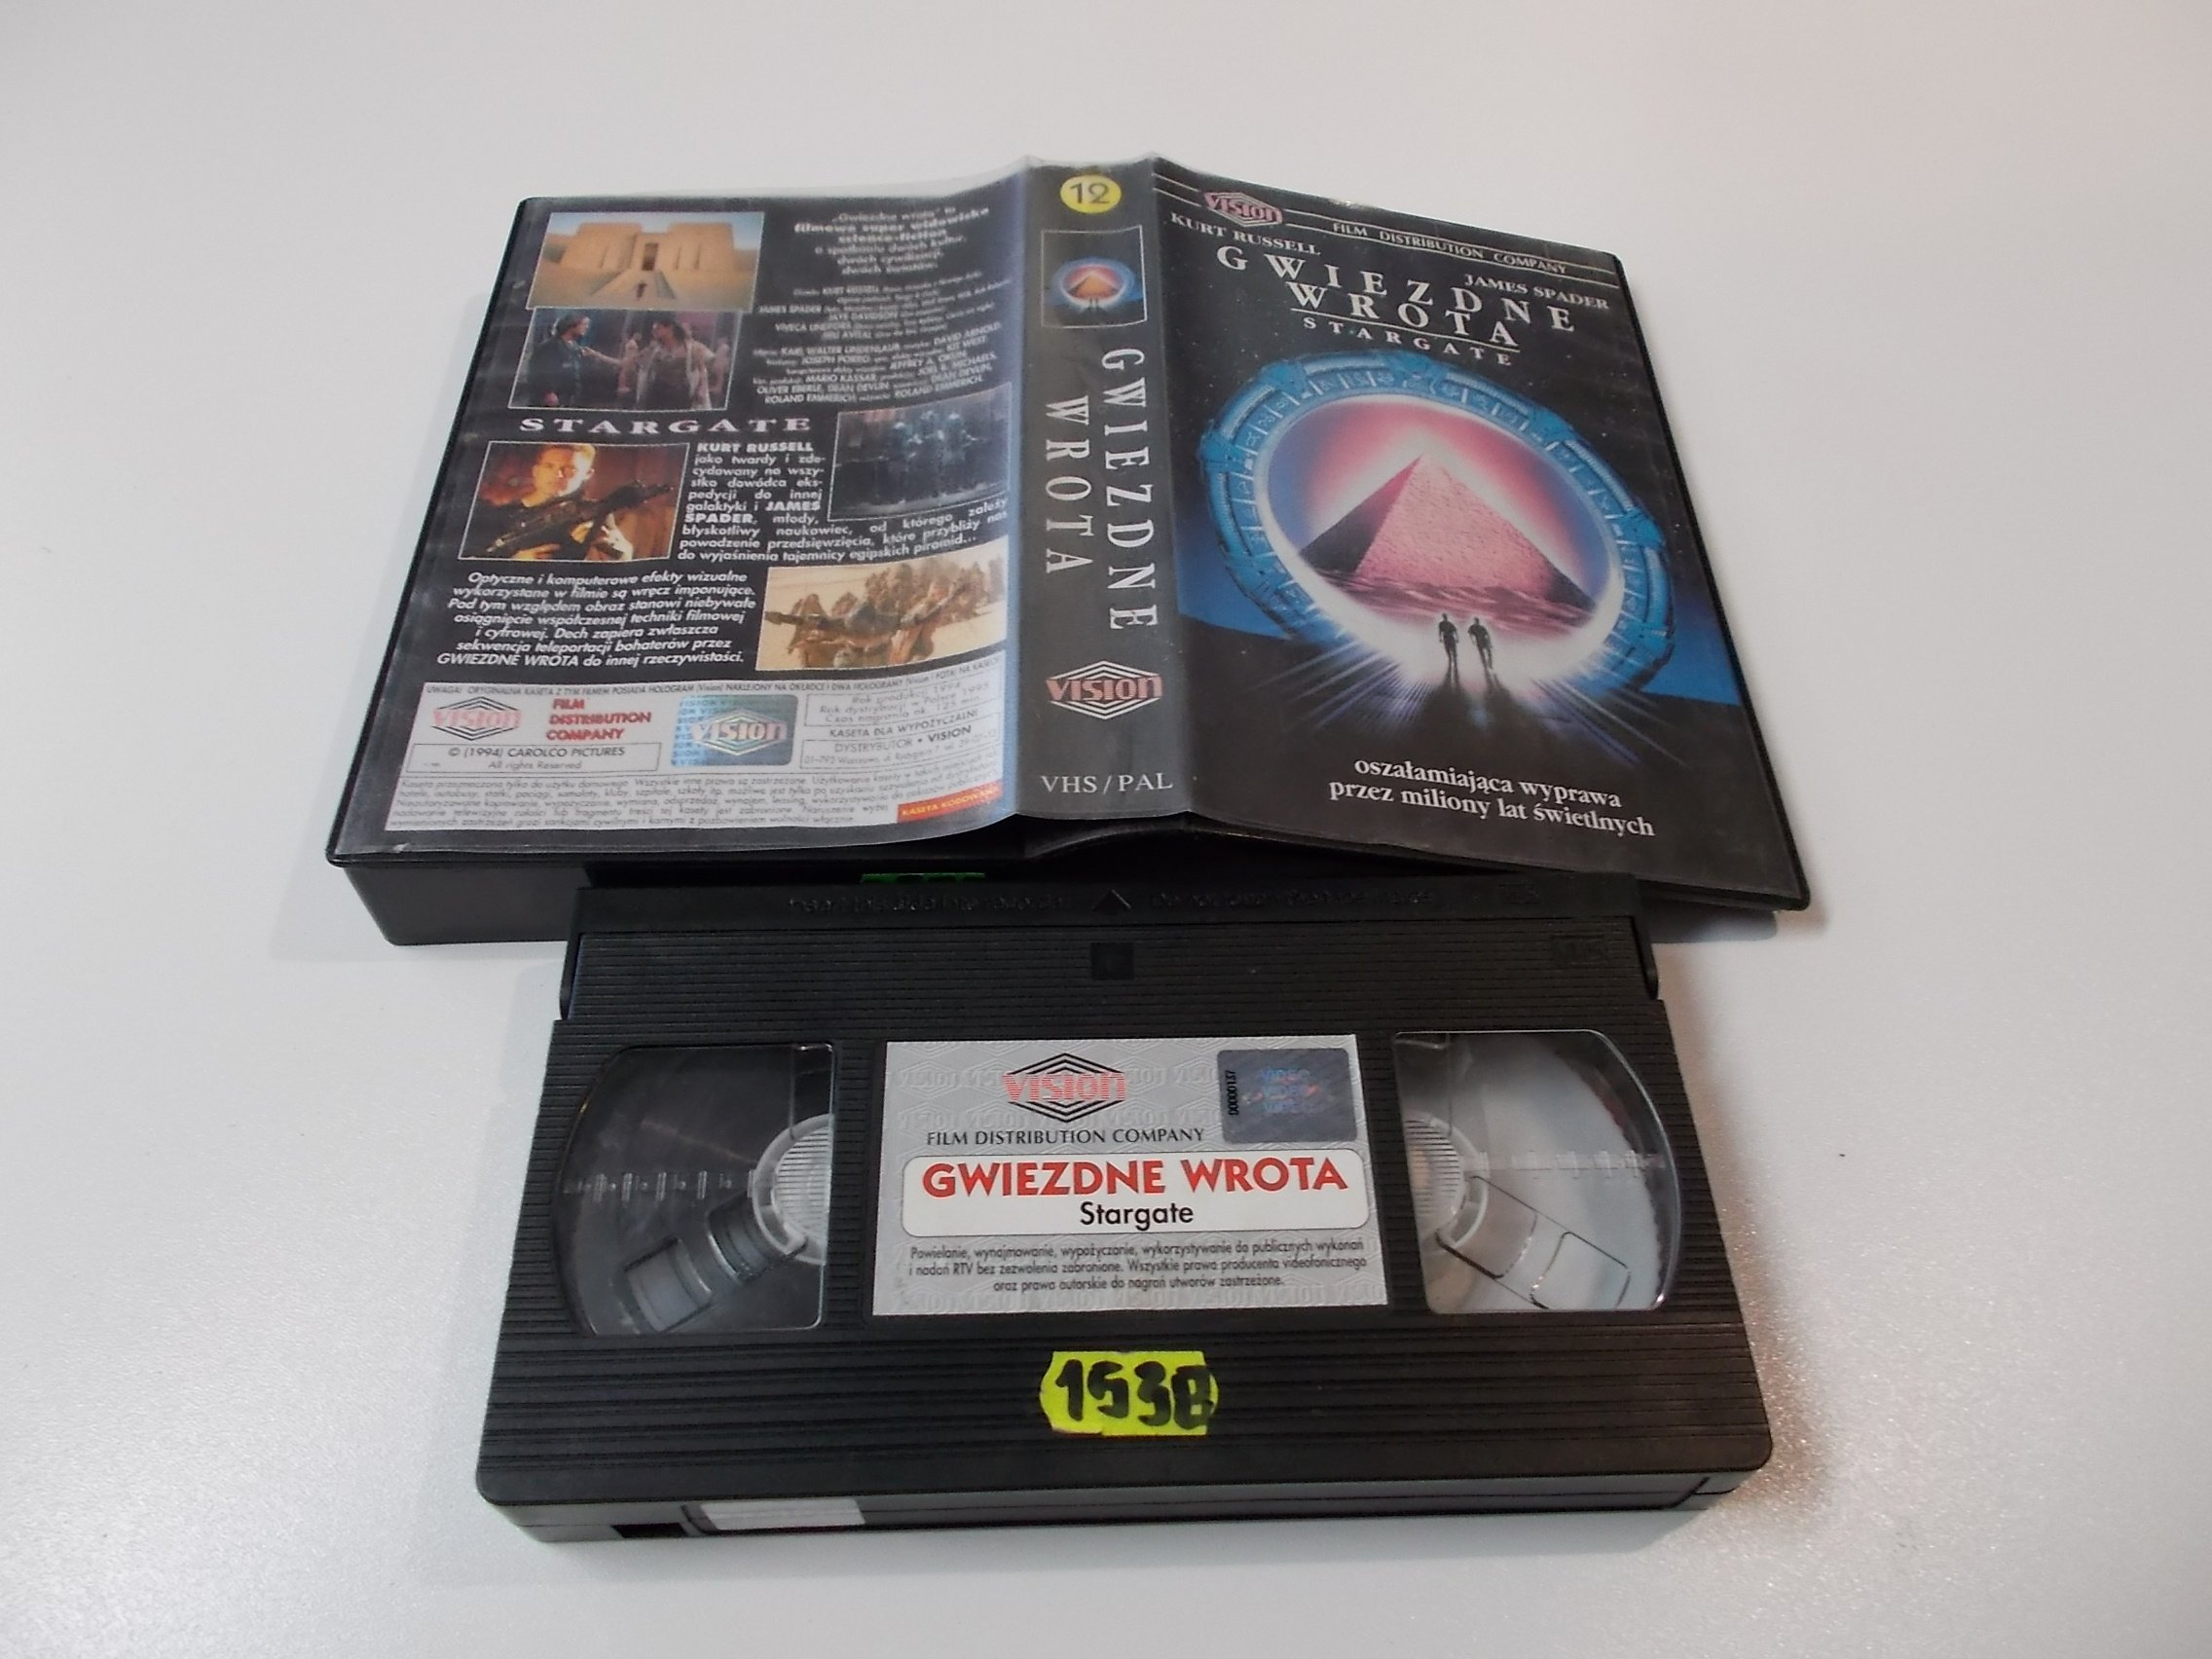 GWIEZDNE WROTA - Kaseta Video VHS - Opole 1568